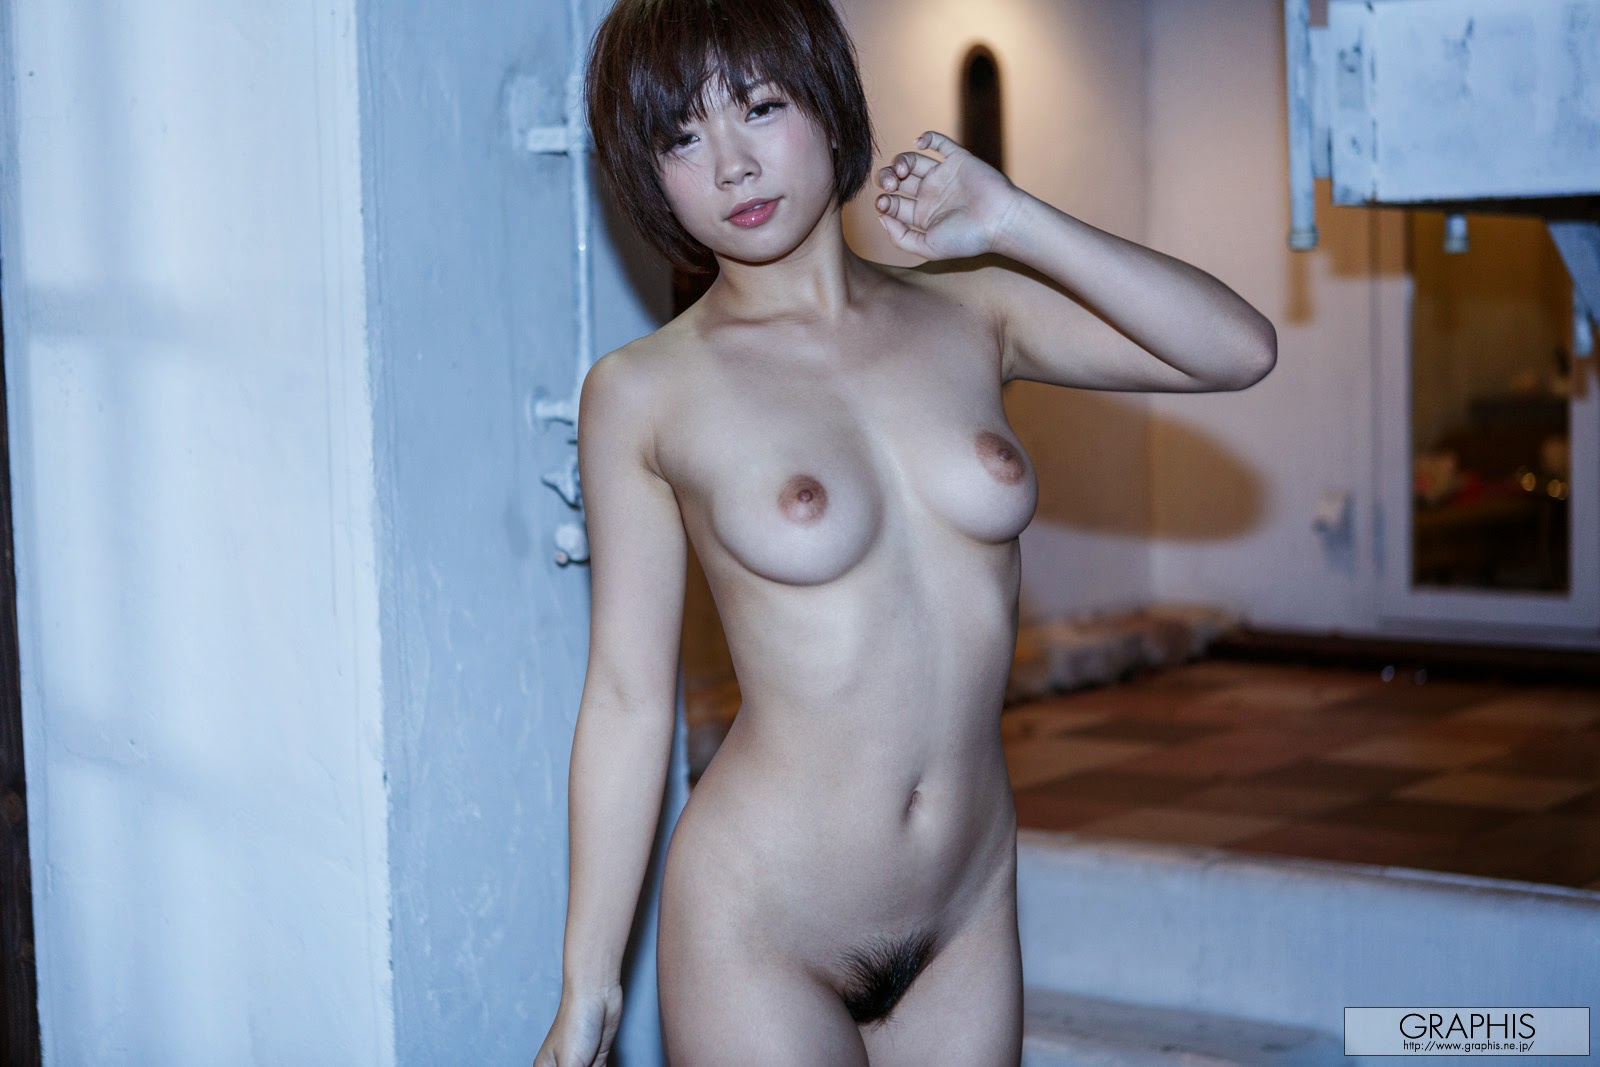 PhimVu Blog Graphis Adult Media - Graphis